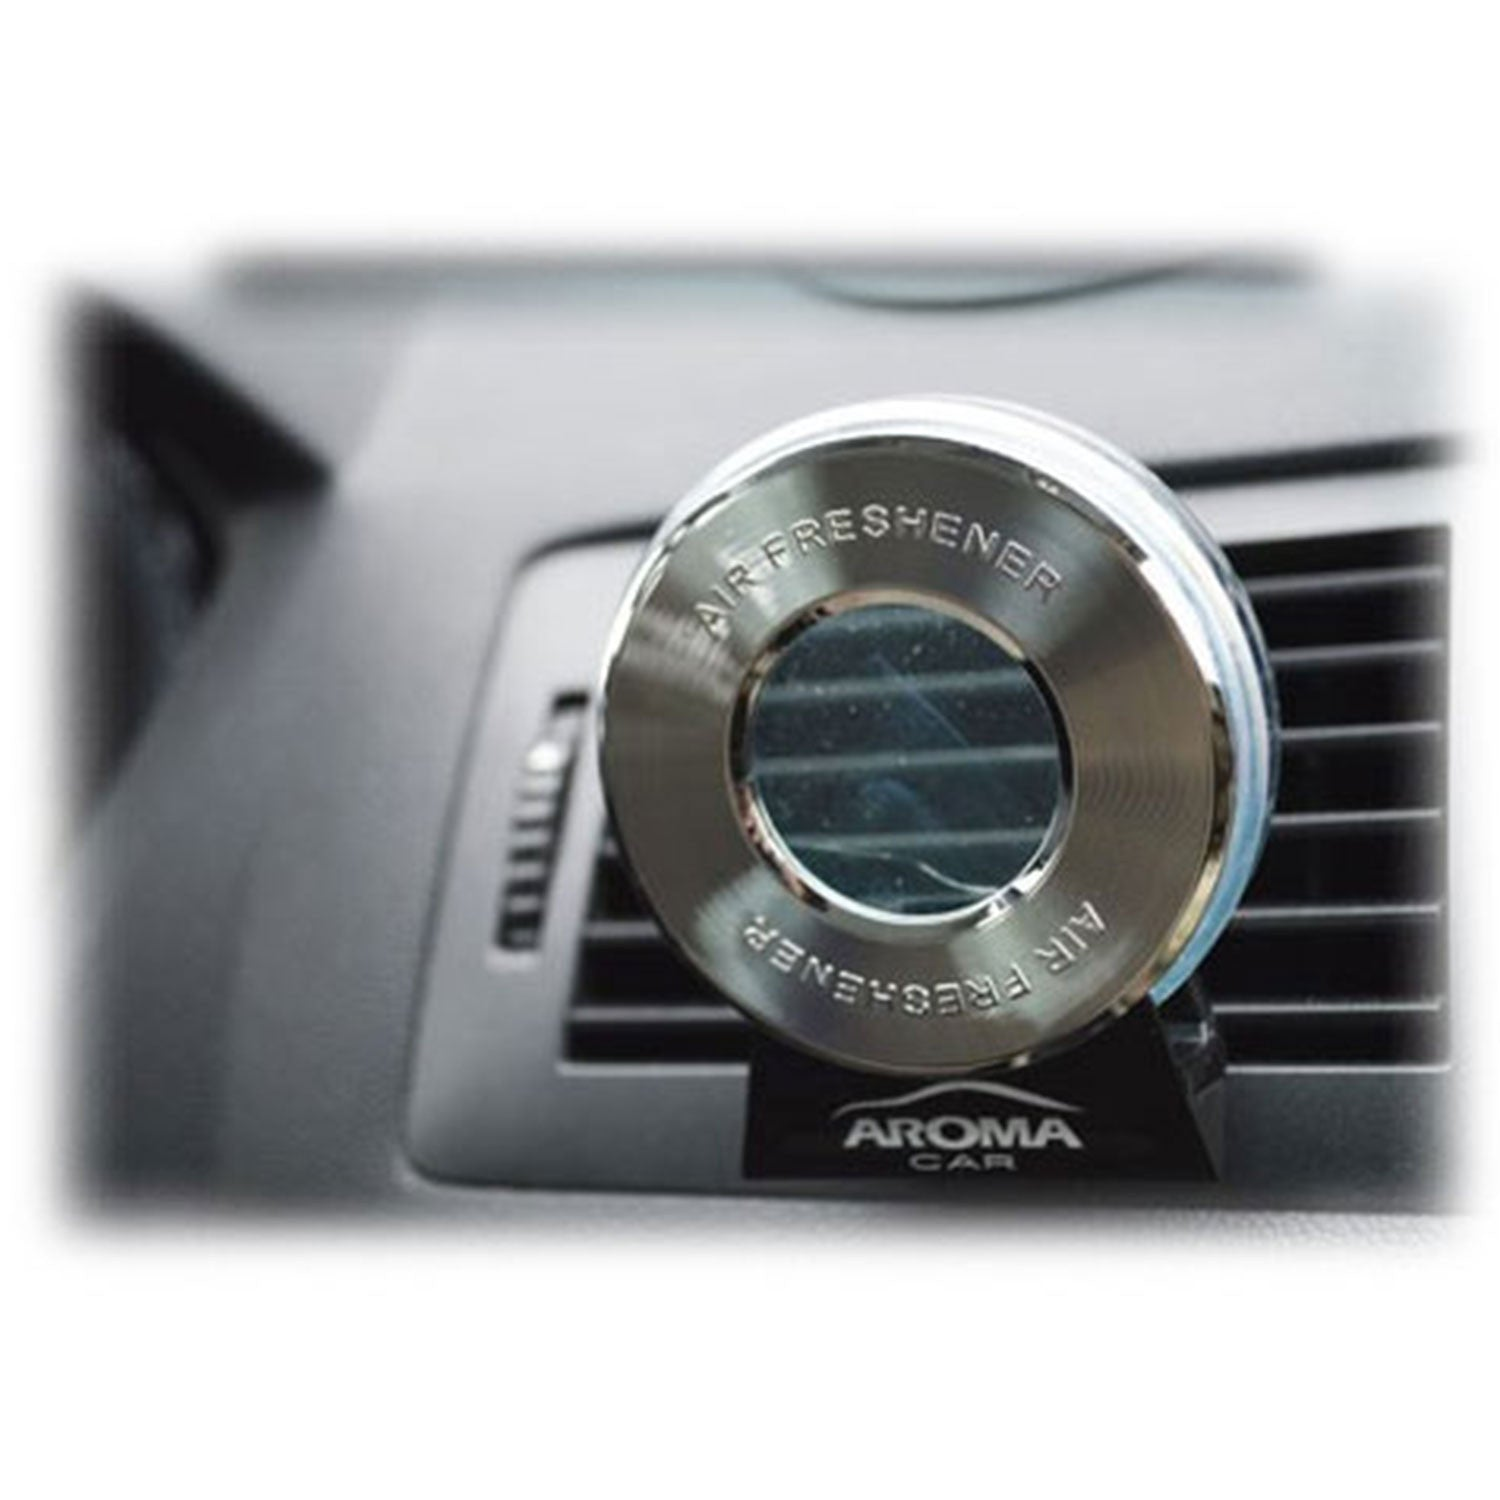 Aroma Disc Car Vent Air Freshener Car Home Office Air Freshener